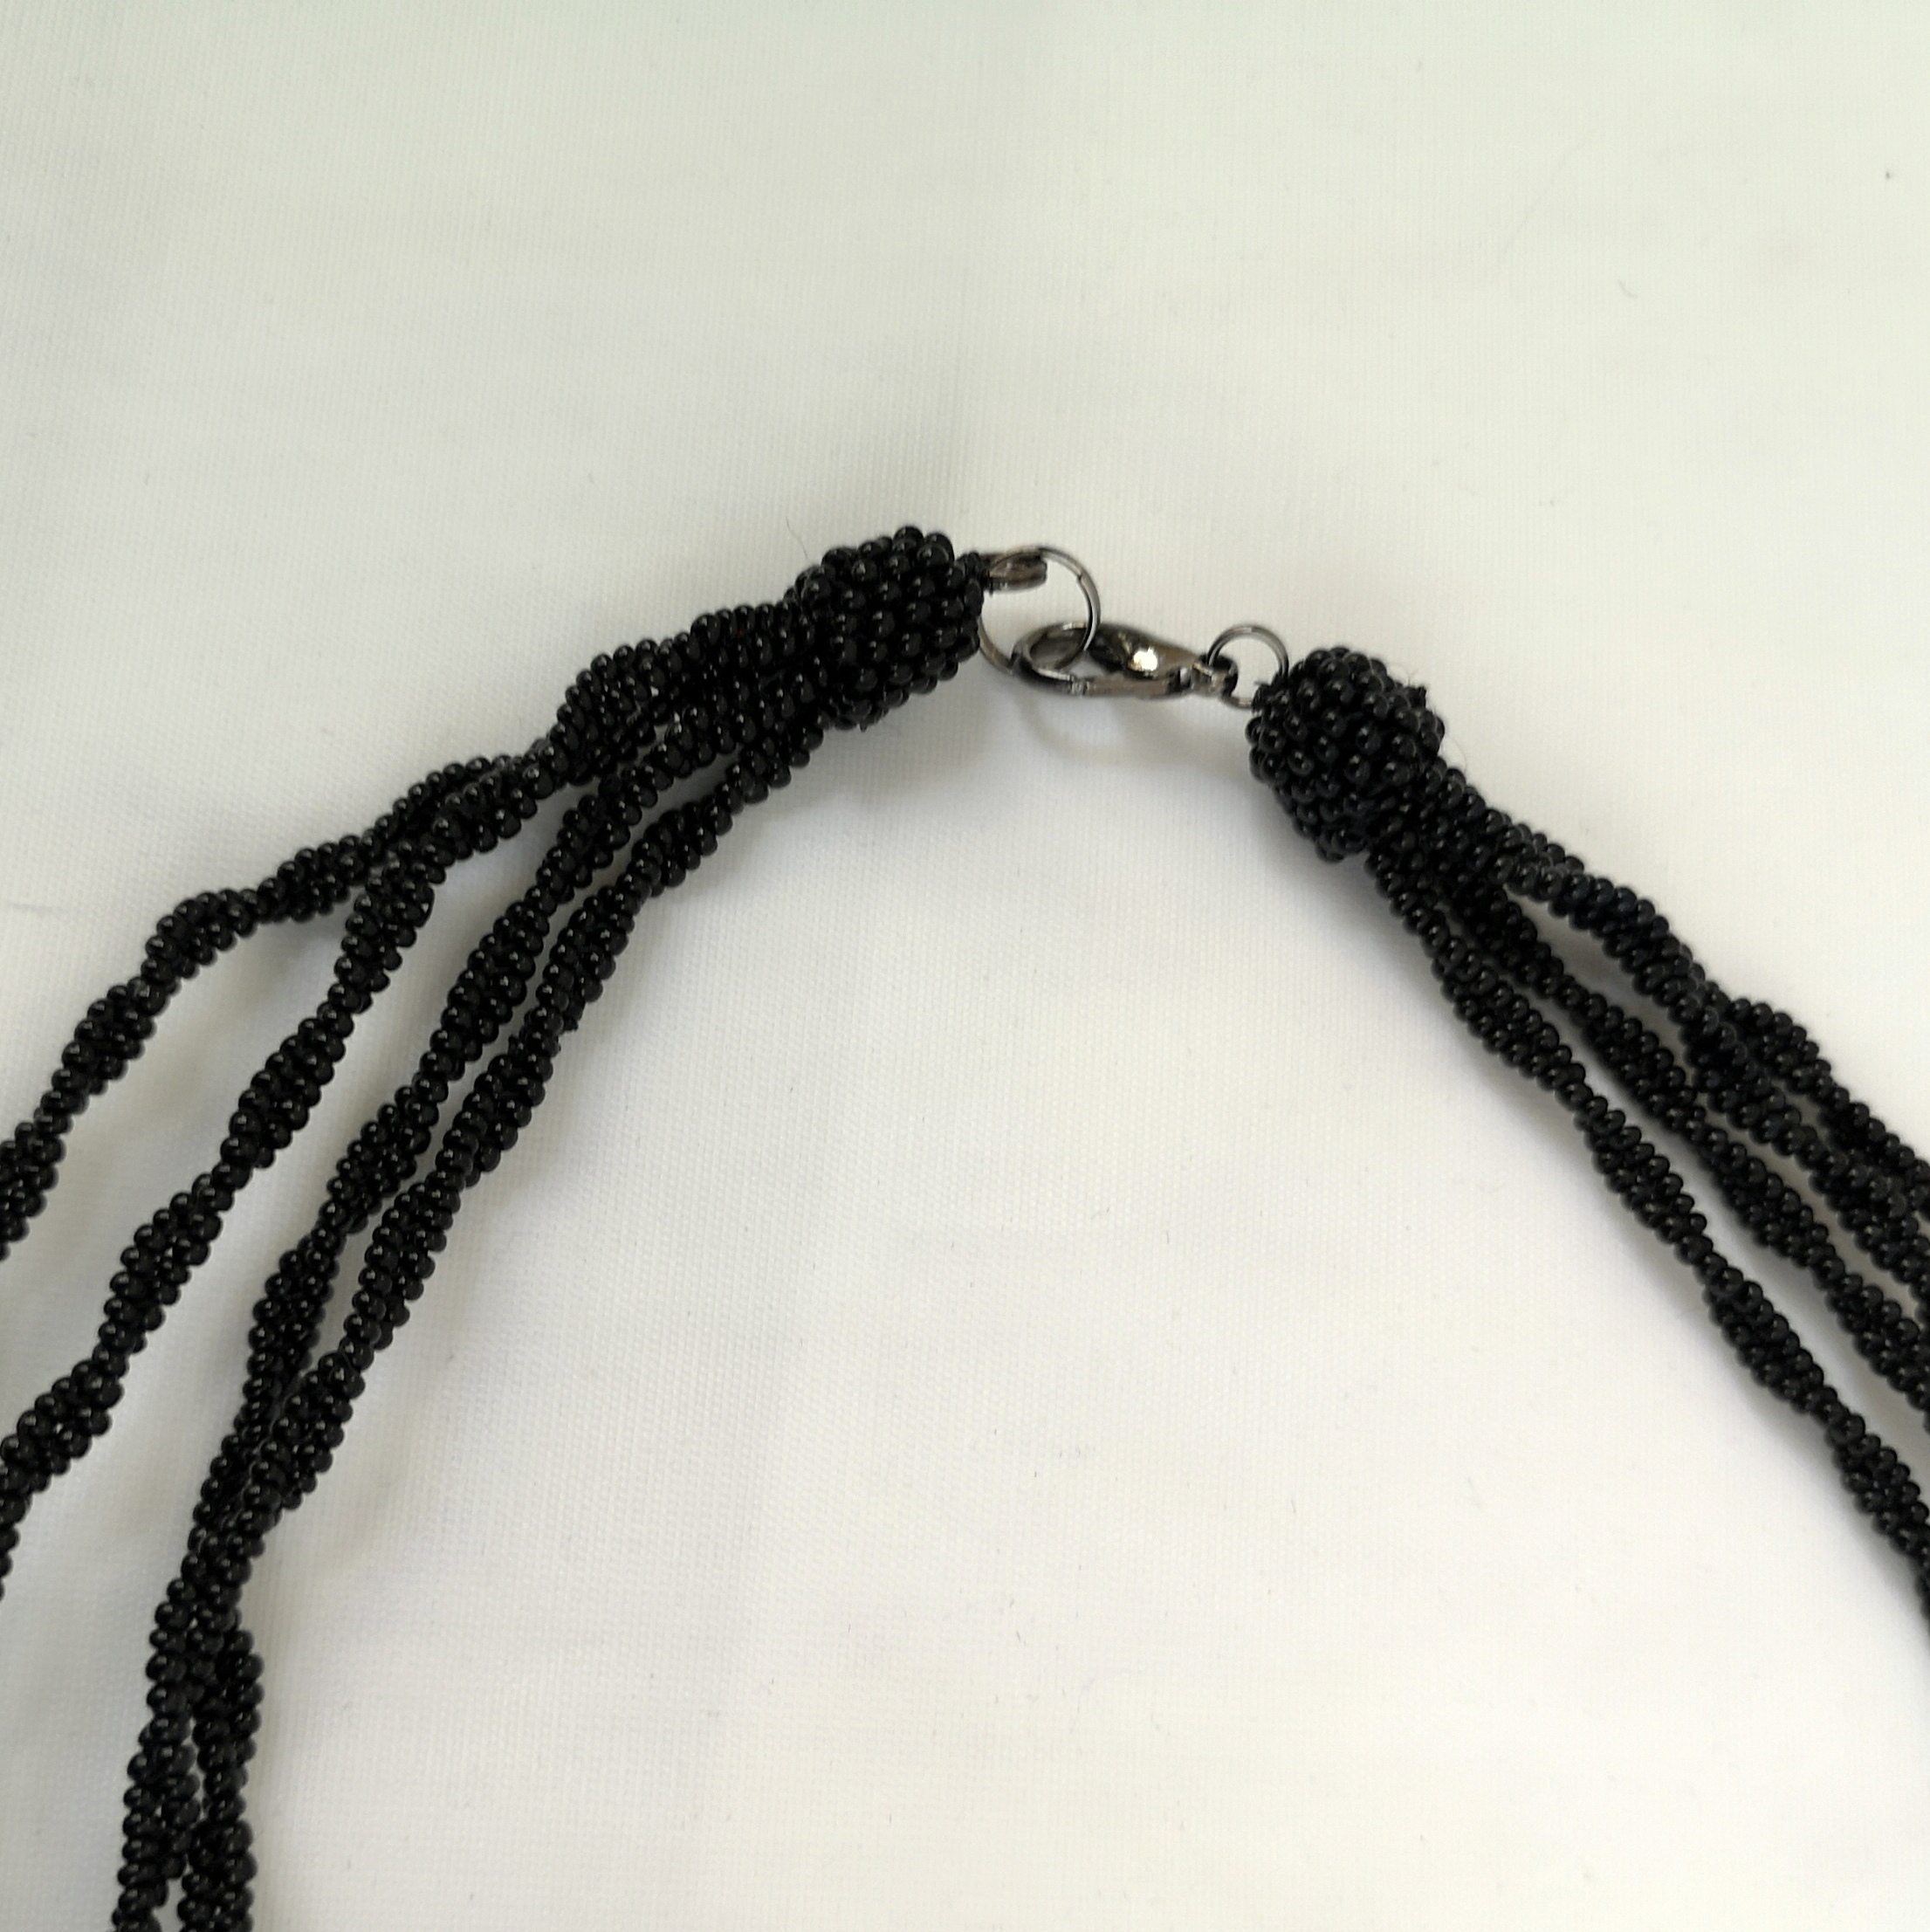 seed beads necklac (15)20069